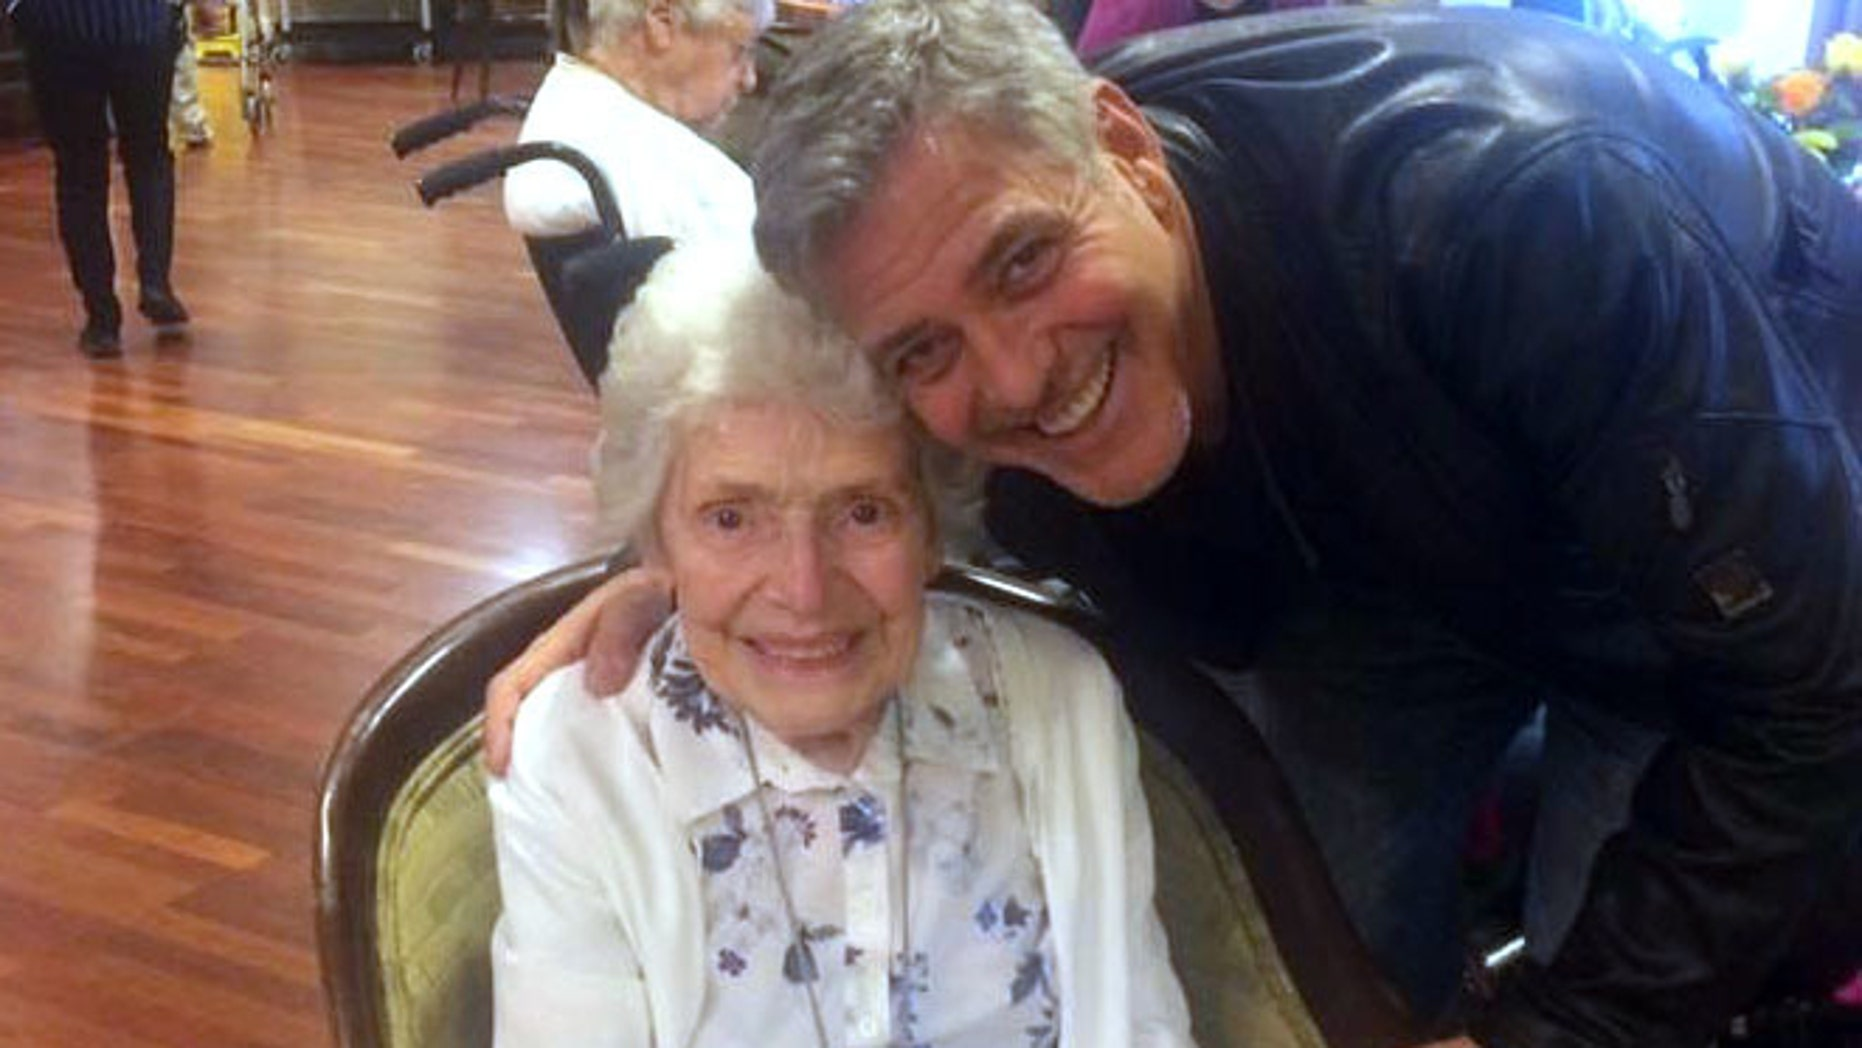 In this photo taken on Sunday, March 19, 2017, US actor George Clooney visits 87-year-old Pat Adams at Sunrise of Sonning Retirement and Assisted Living Facility in Reading, England. Actor George Clooney startled an 87-year-old fan in Britain by showing up at her assisted living facility with flowers and a card to wish her a happy birthday. (Linda Jones/Sunrise of Sonning Retirement and Assisted Living Facility via AP)